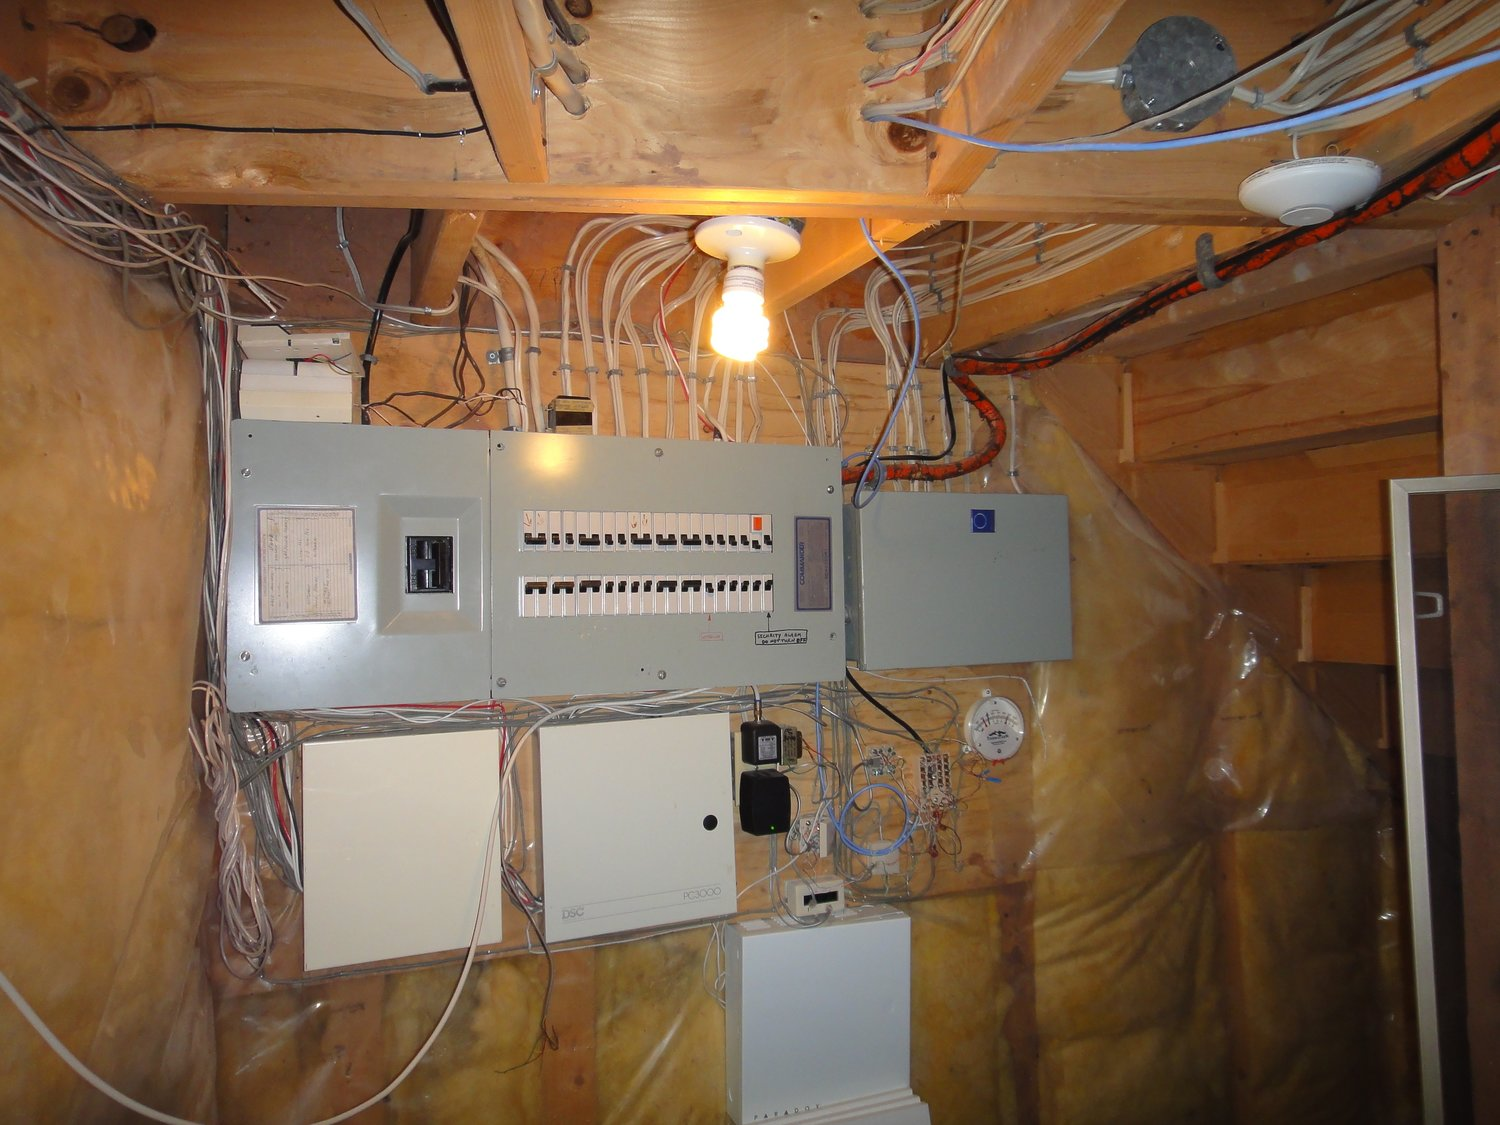 A Primer On Household Wiring Cherry Home Inspections